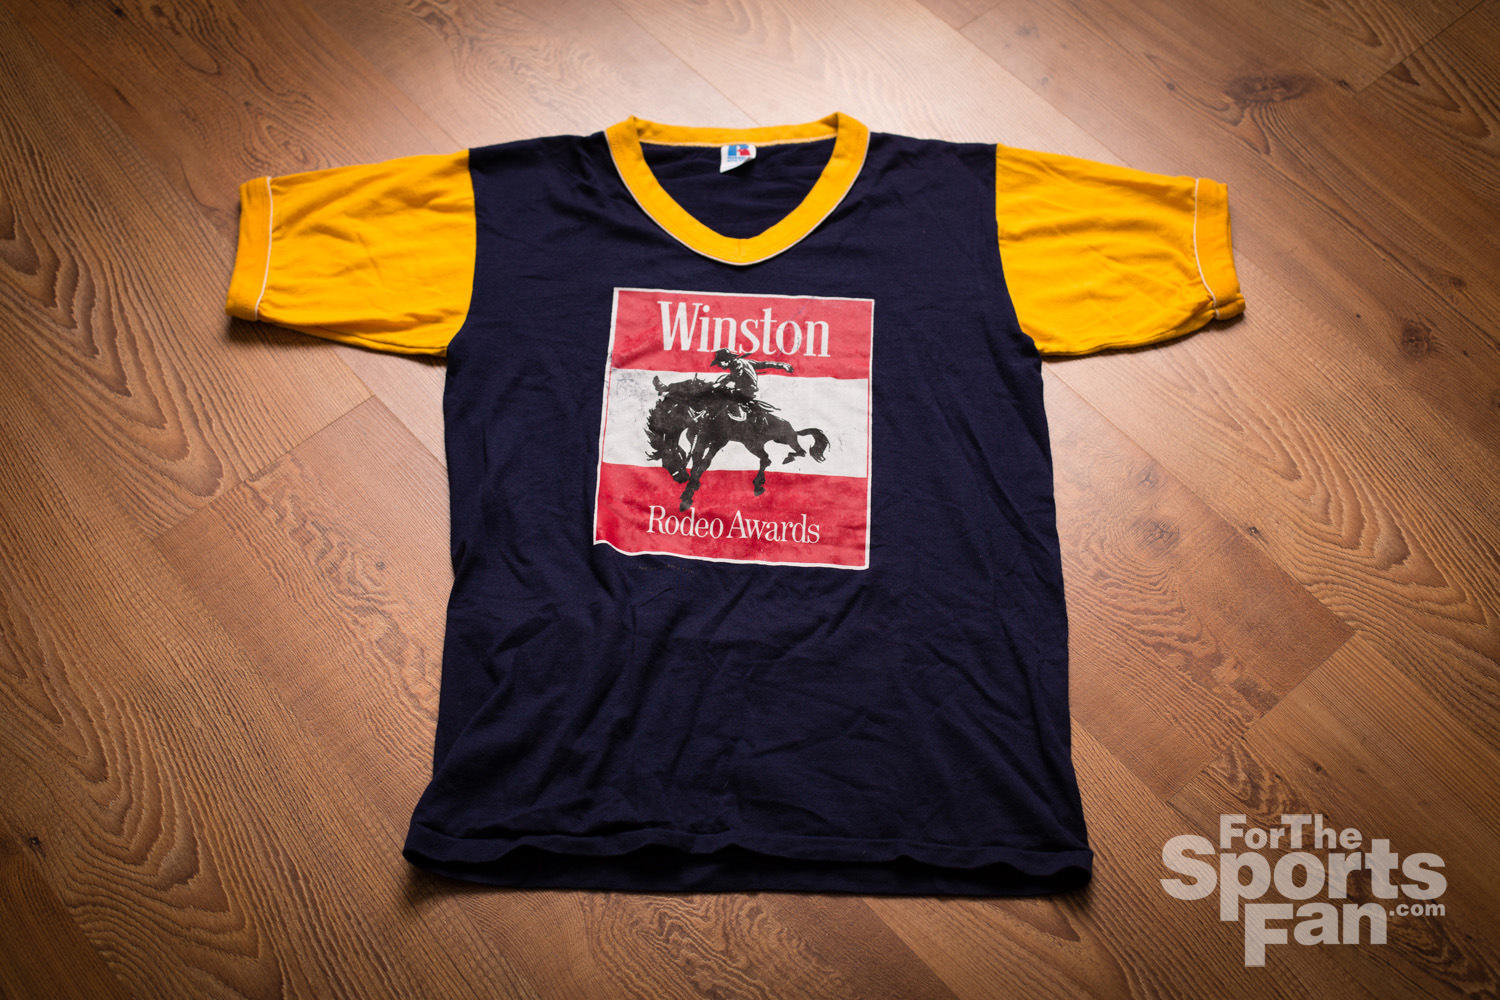 Vintage 70s Winston Rodeo Awards T-Shirt